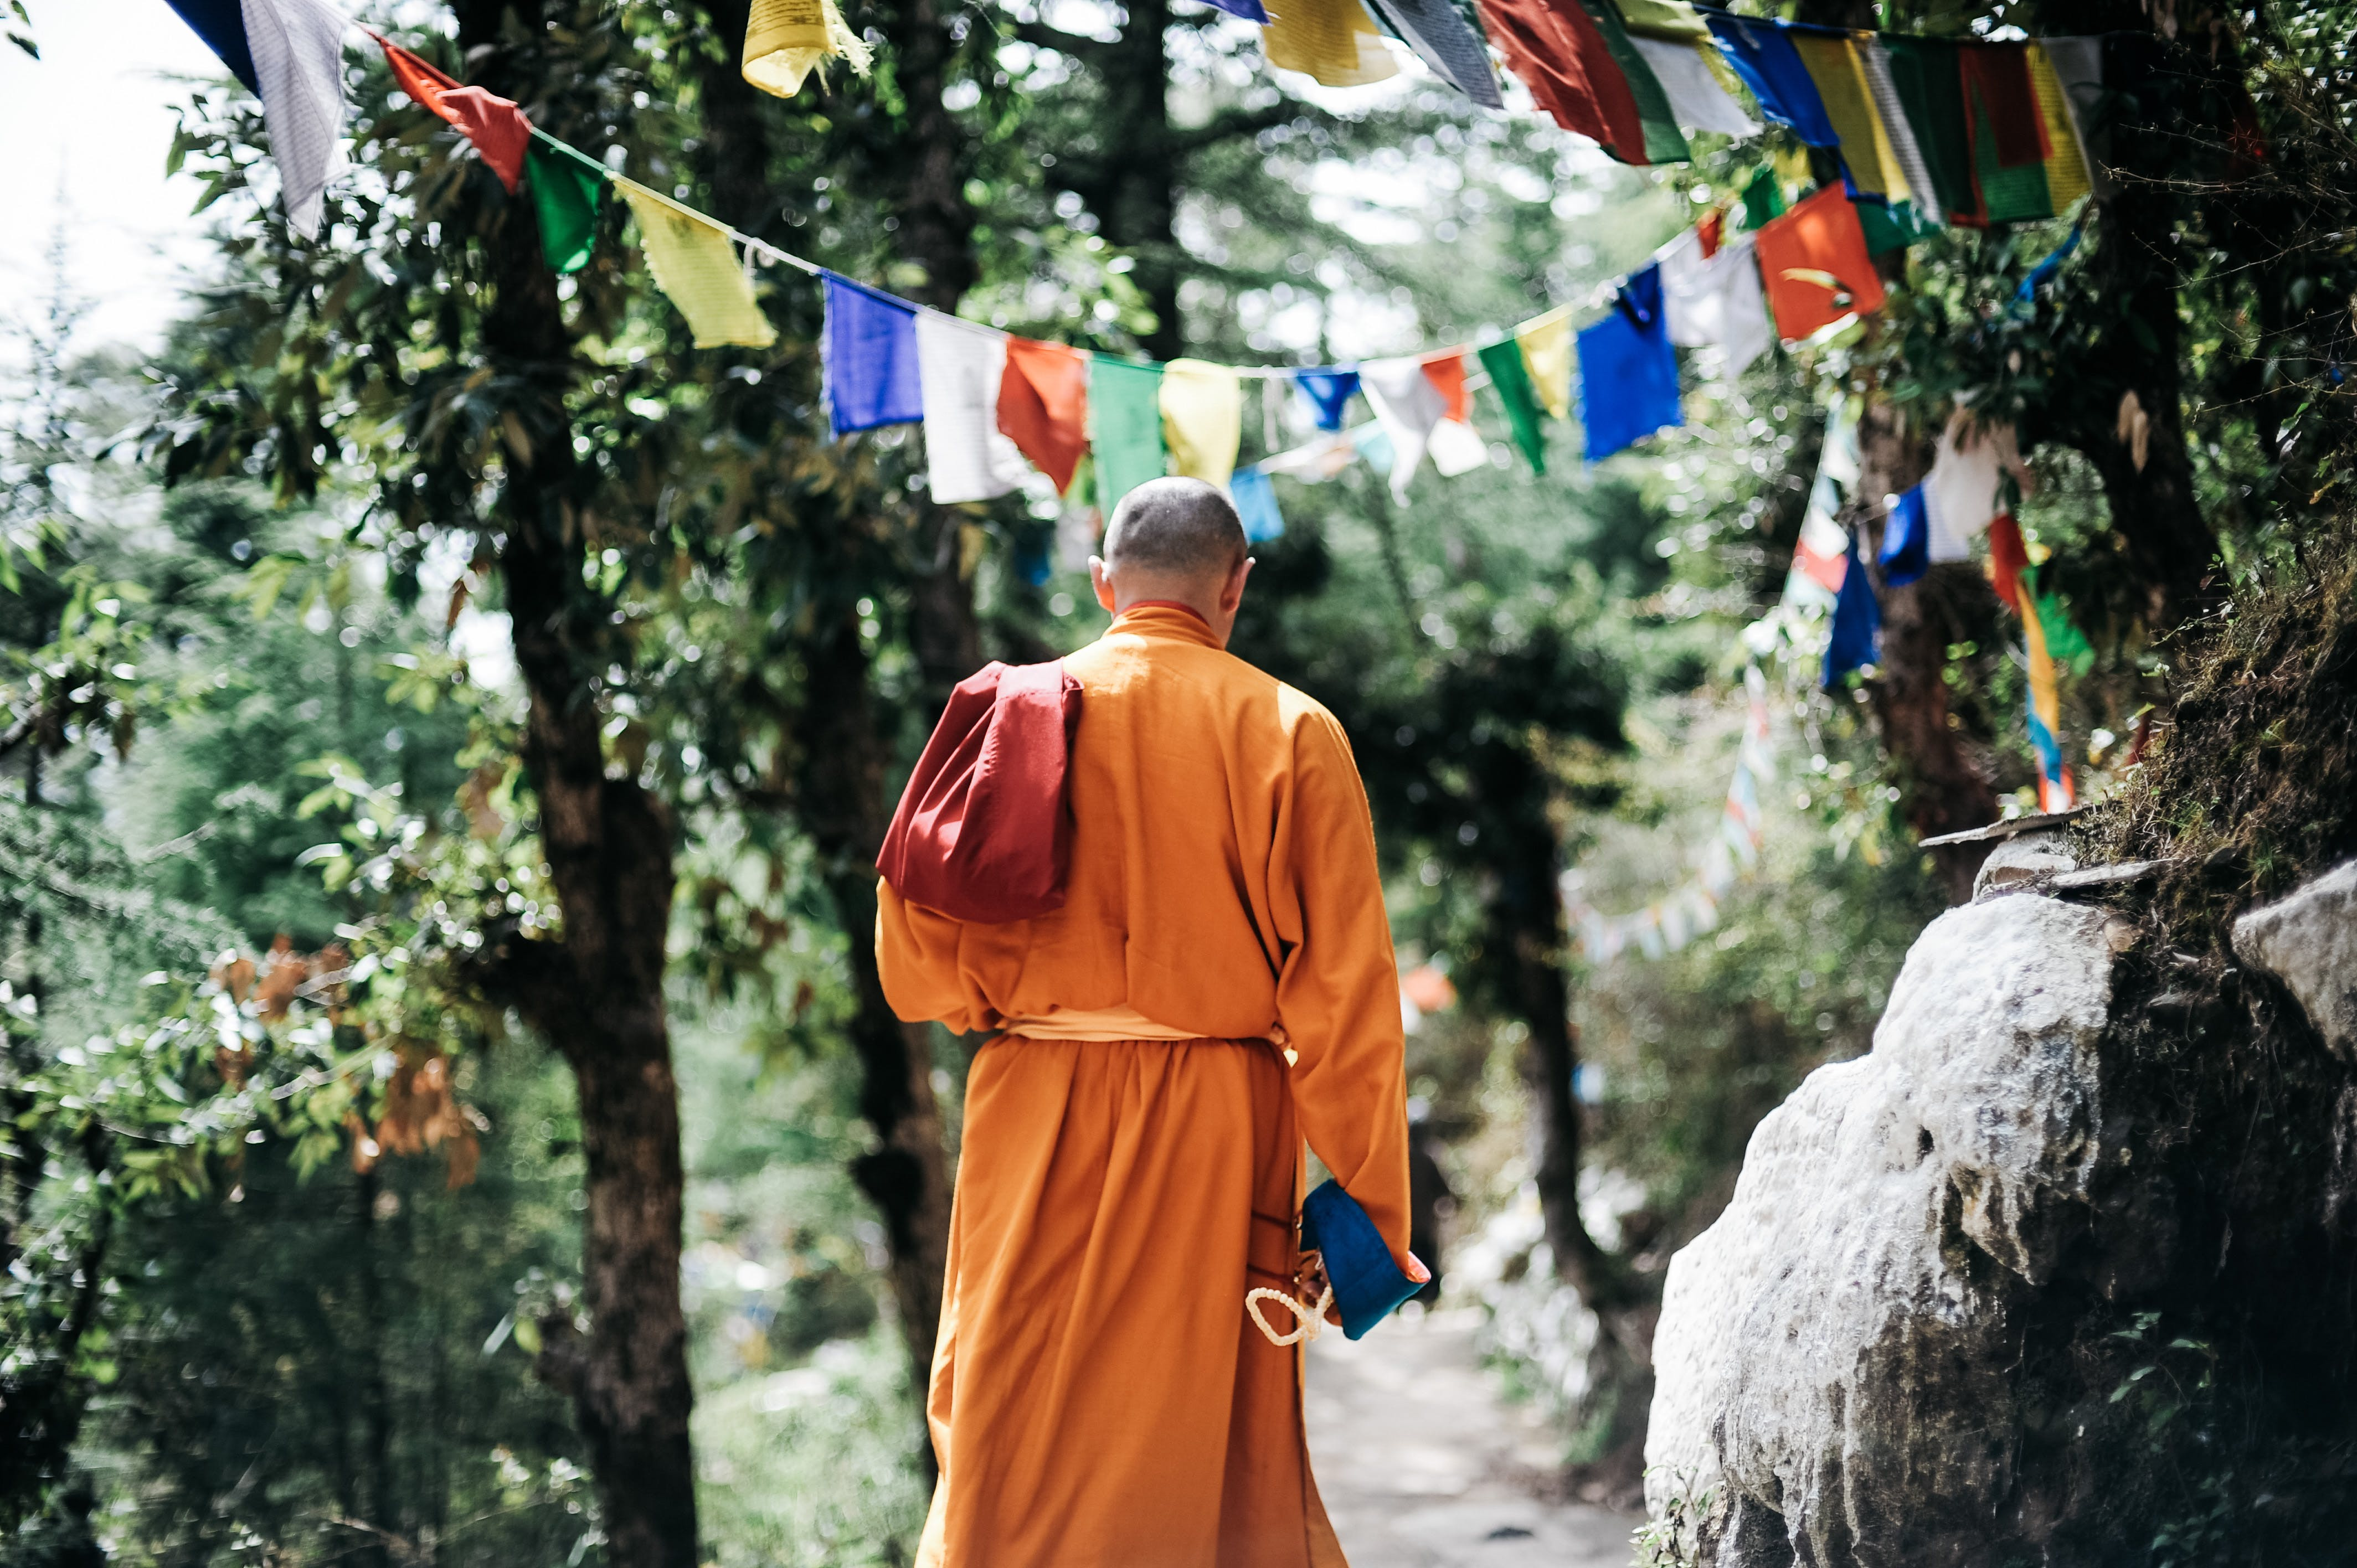 Monk Walking Near Buntings during Day